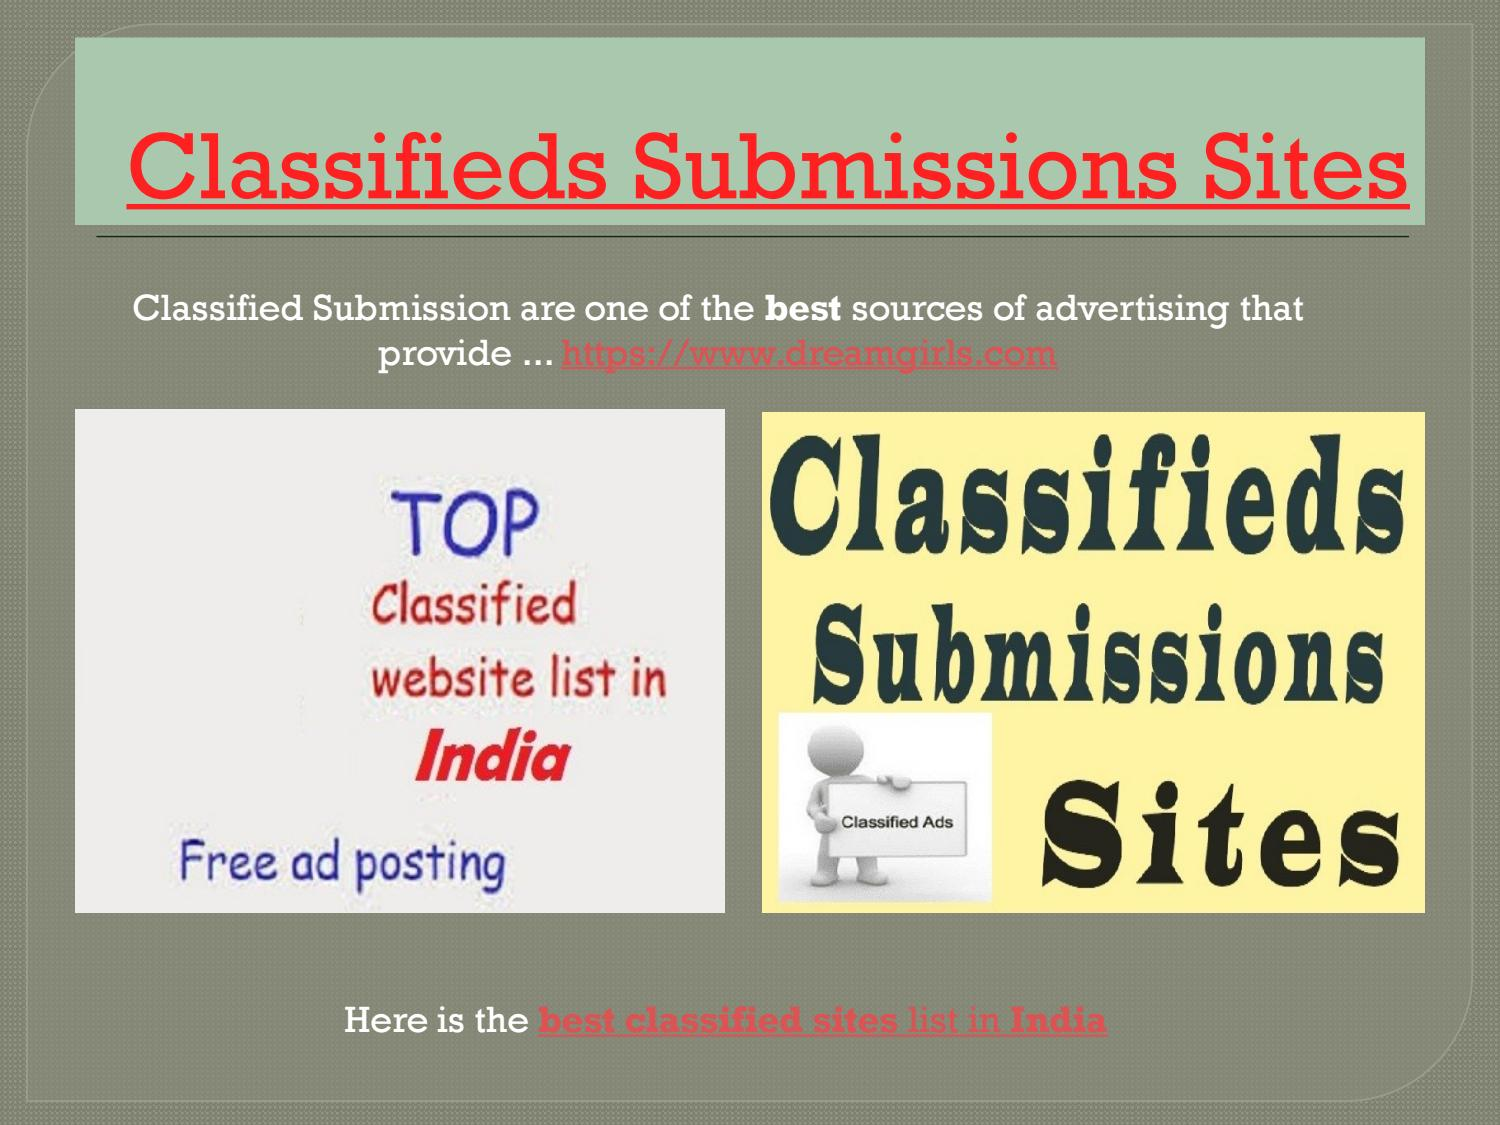 Ad Post Free Classified Site In India by Dipali Mandal - issuu